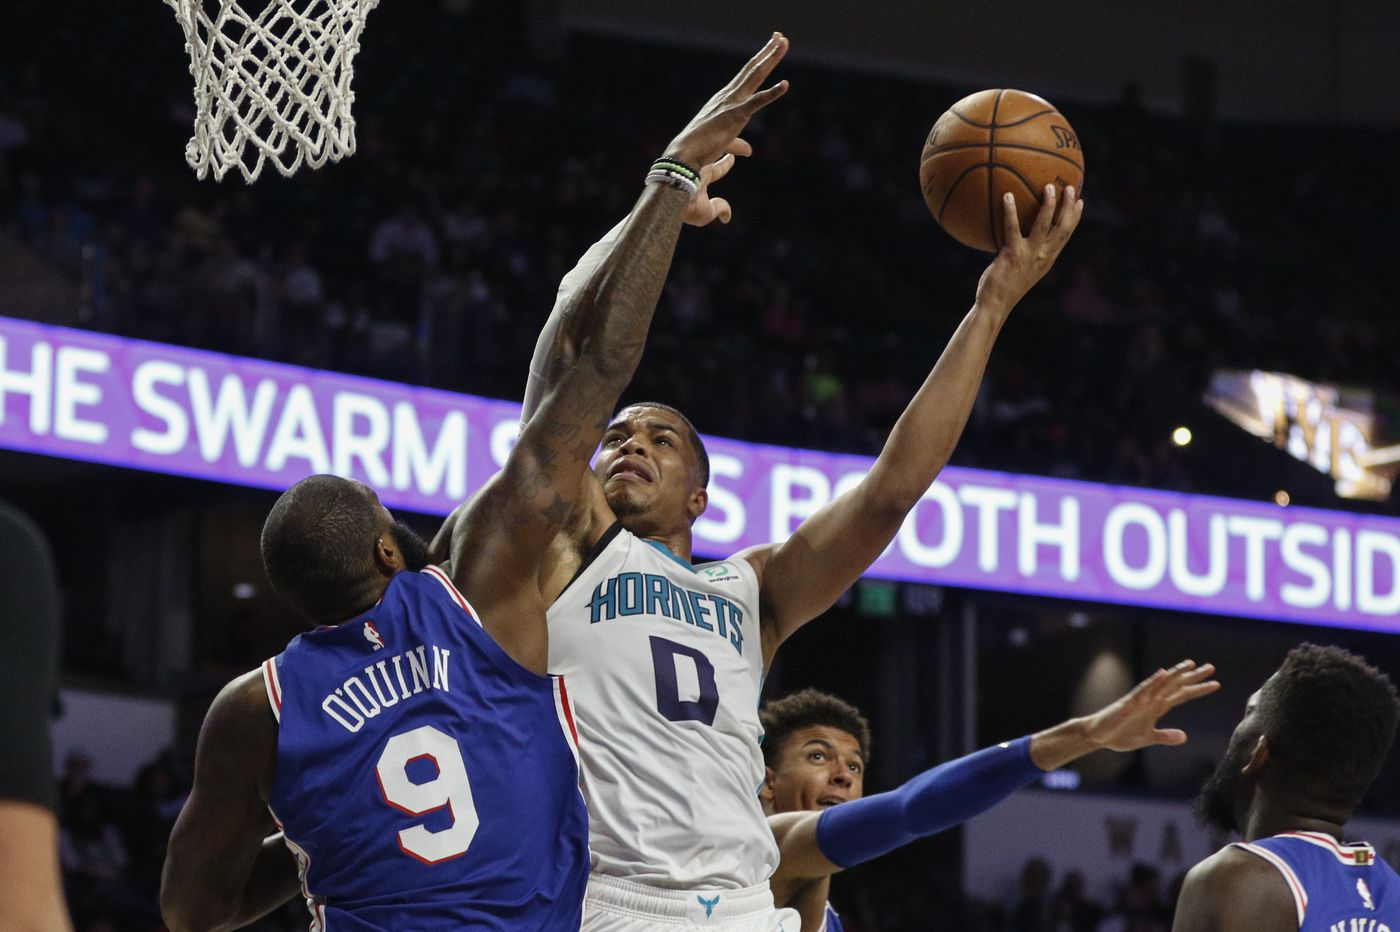 Matisse Thybulle impresses again as Sixers sting Hornets, 100-87